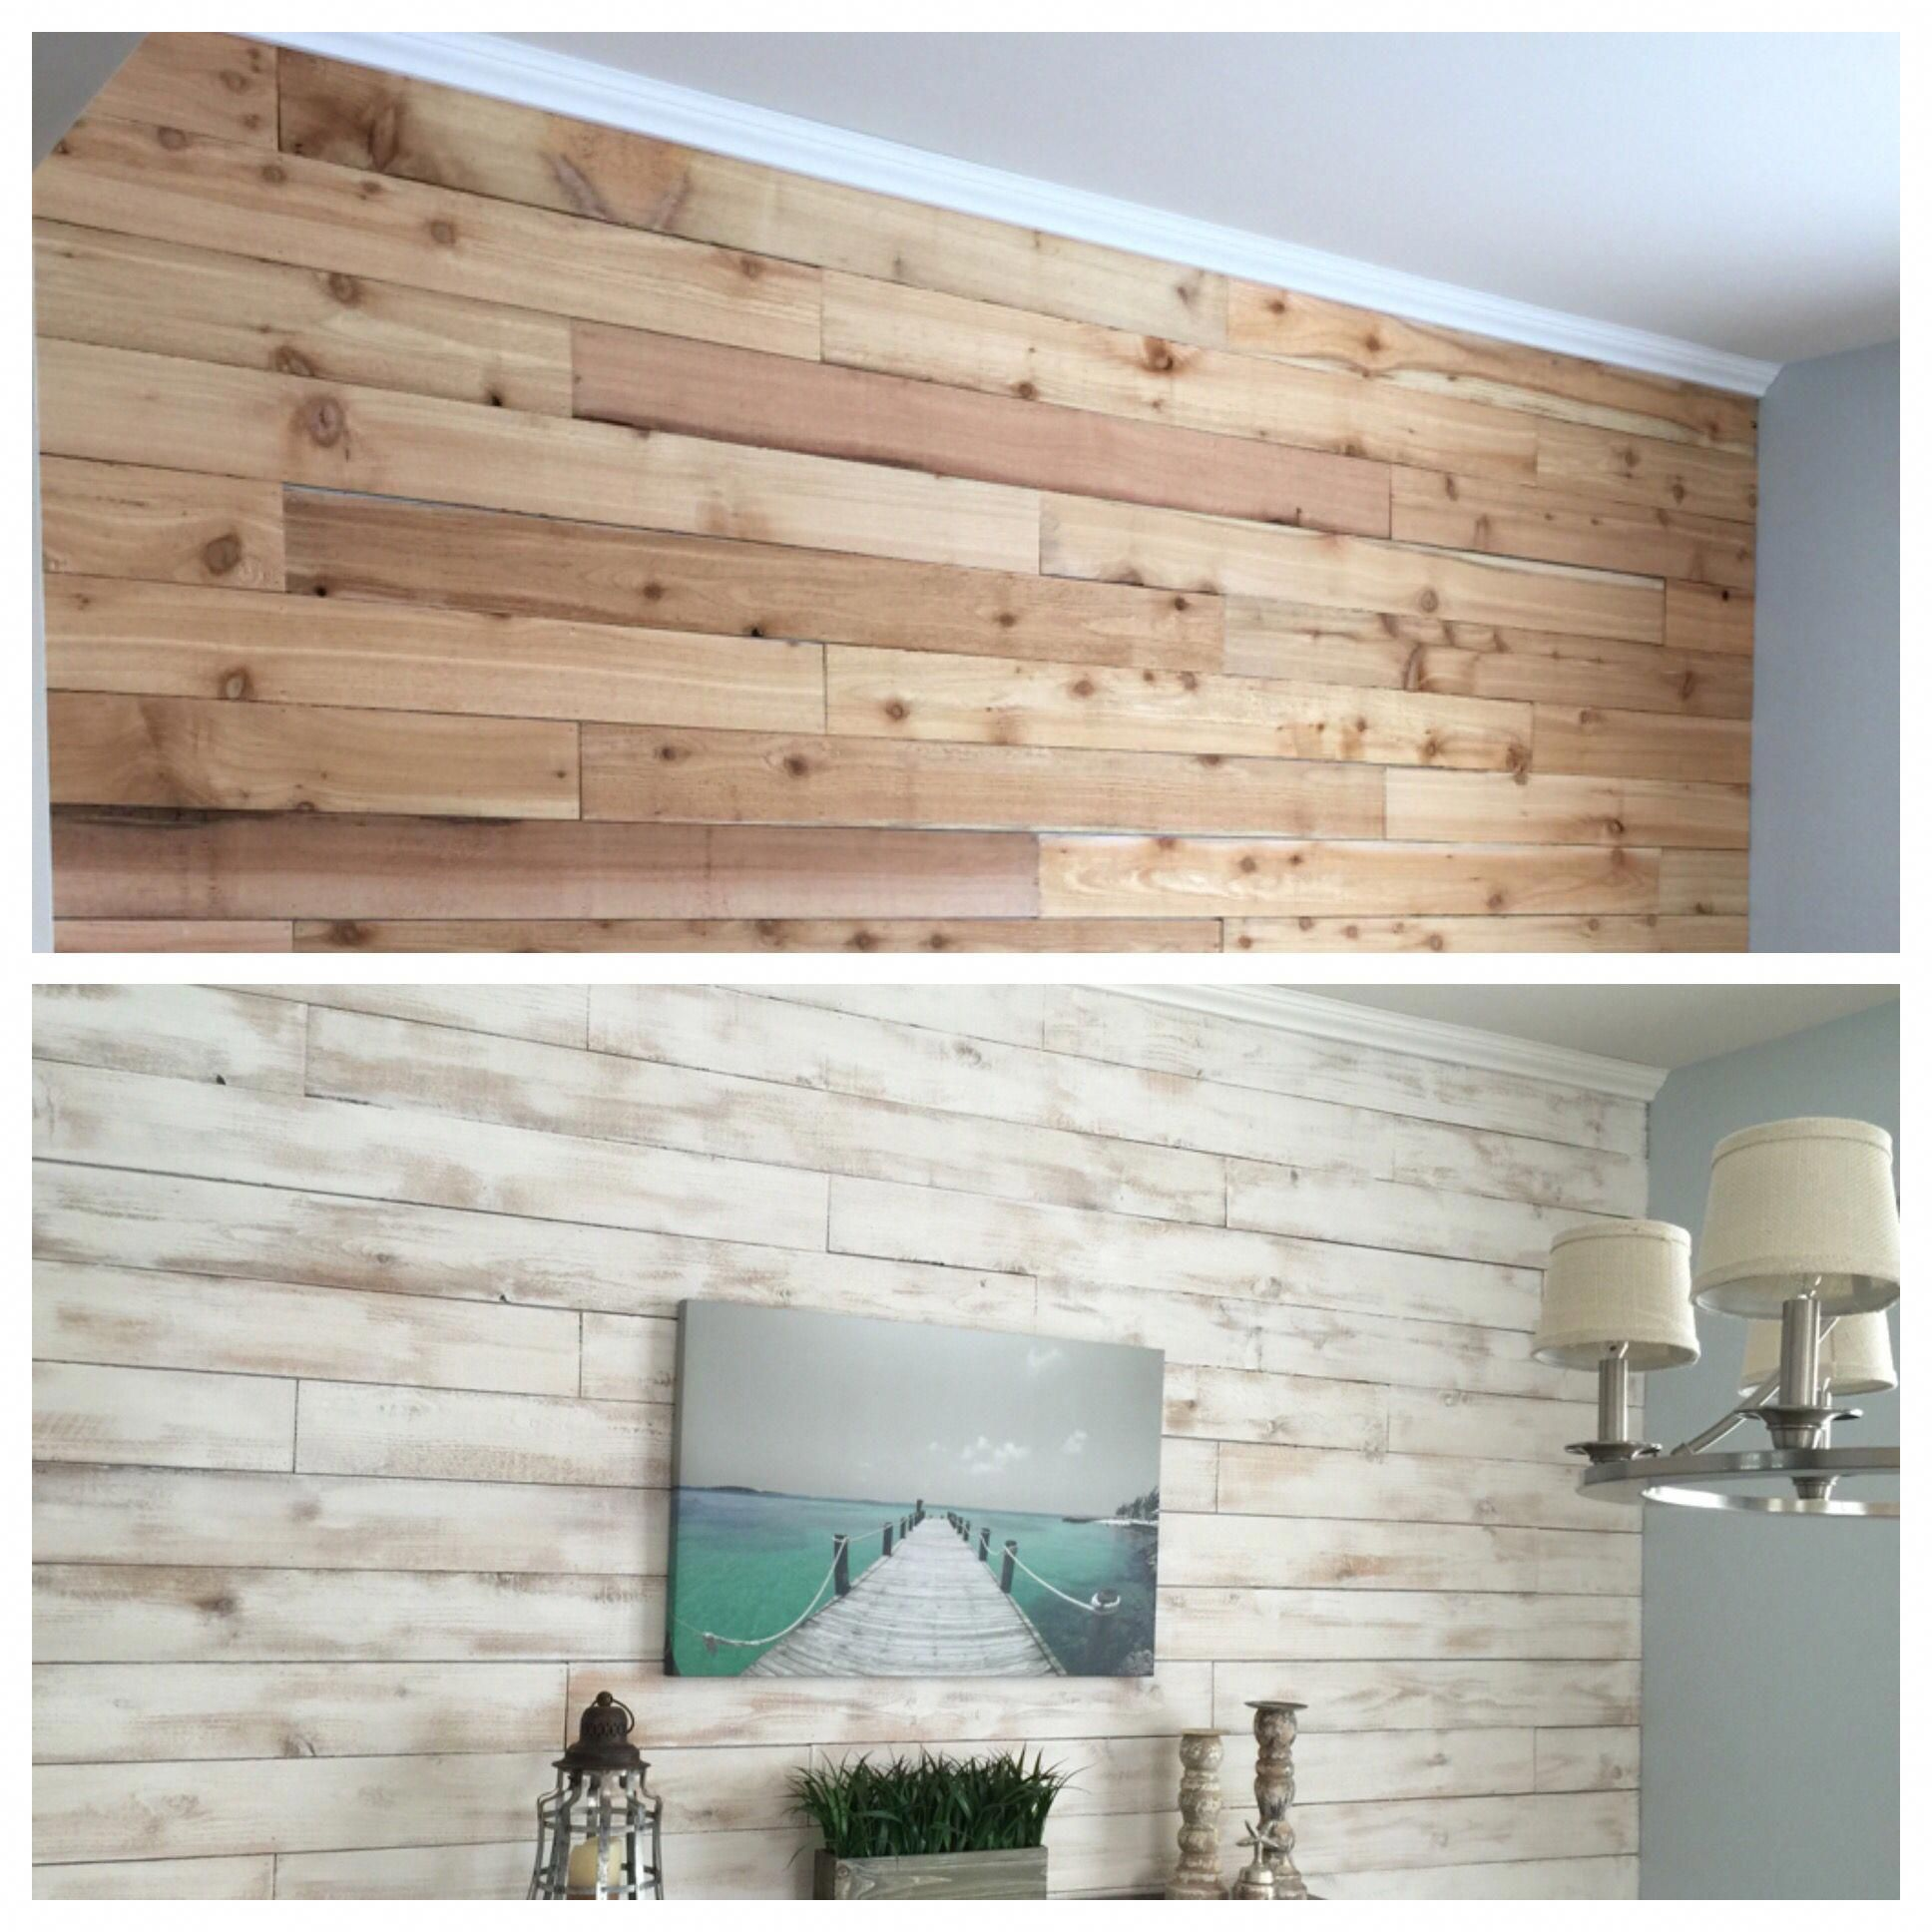 Cedar Accent Wall In Bathroom: White Washed Wood Wall Made From Cedar Fence Boards